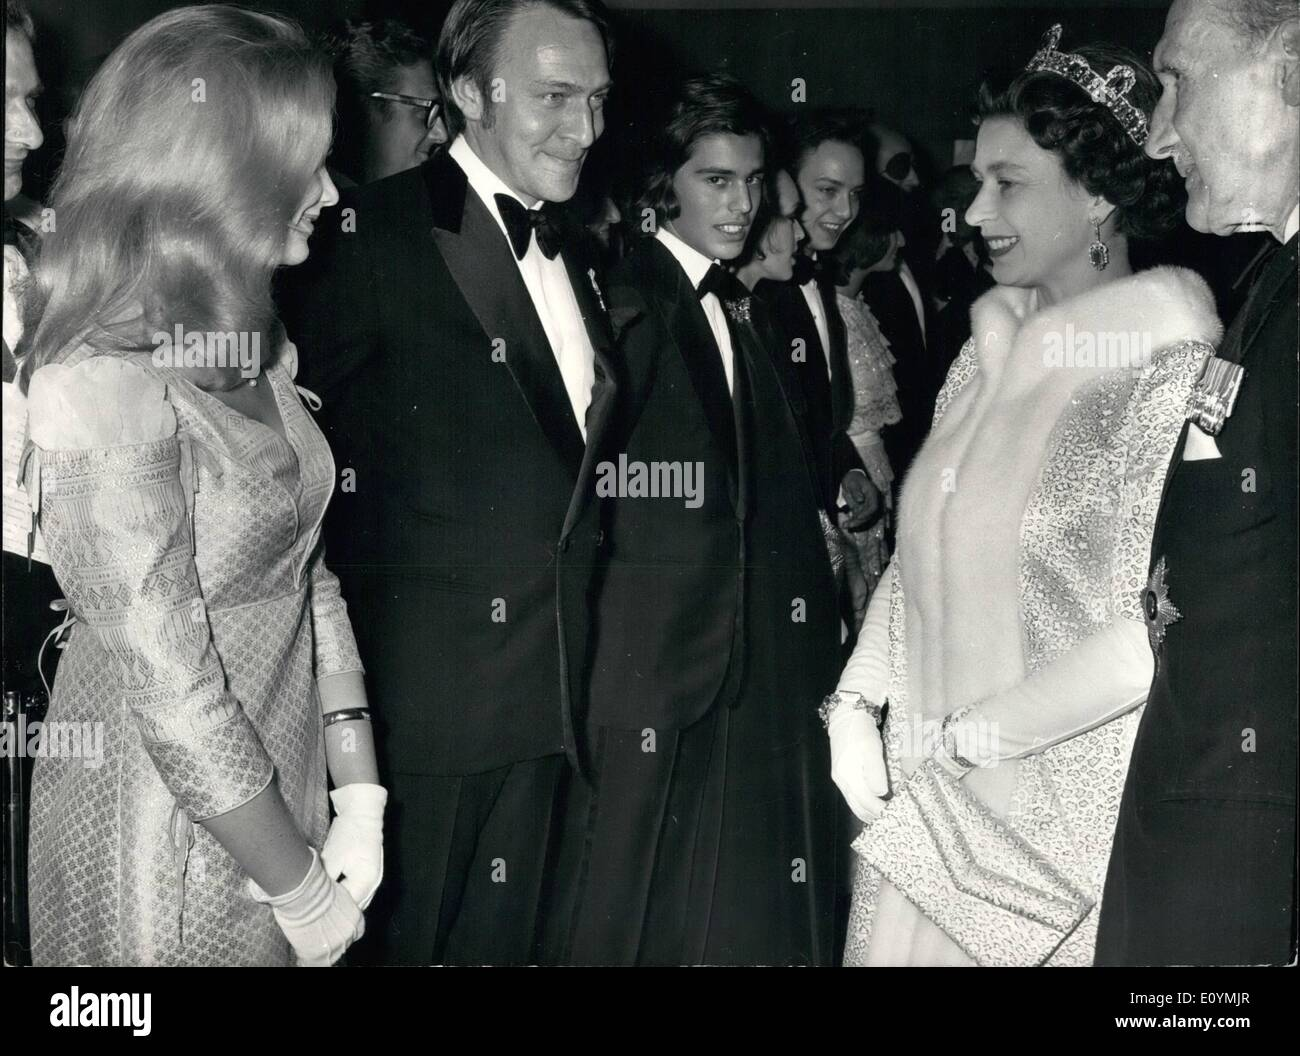 Oct. 10, 1970 - The Queen and Duke of Edinburgh attend premiere of 'Waterloo' at the Odeon Leicester square: This evening The Queen and the Duke of Edinburgh attended the premiere of the film 'Waterloo'' which stars Rod Steiger Christopher Plummer and Jack Hawkins in aid of Soldiers 'Sailors'' and Arman's Families Asation at the Leicester Square Odeon. Photo shows H.M. the Queen seen talking to Christopher Plummer who takes the part of the Duke of Wellington in the film next to him is his wife. - Stock Image